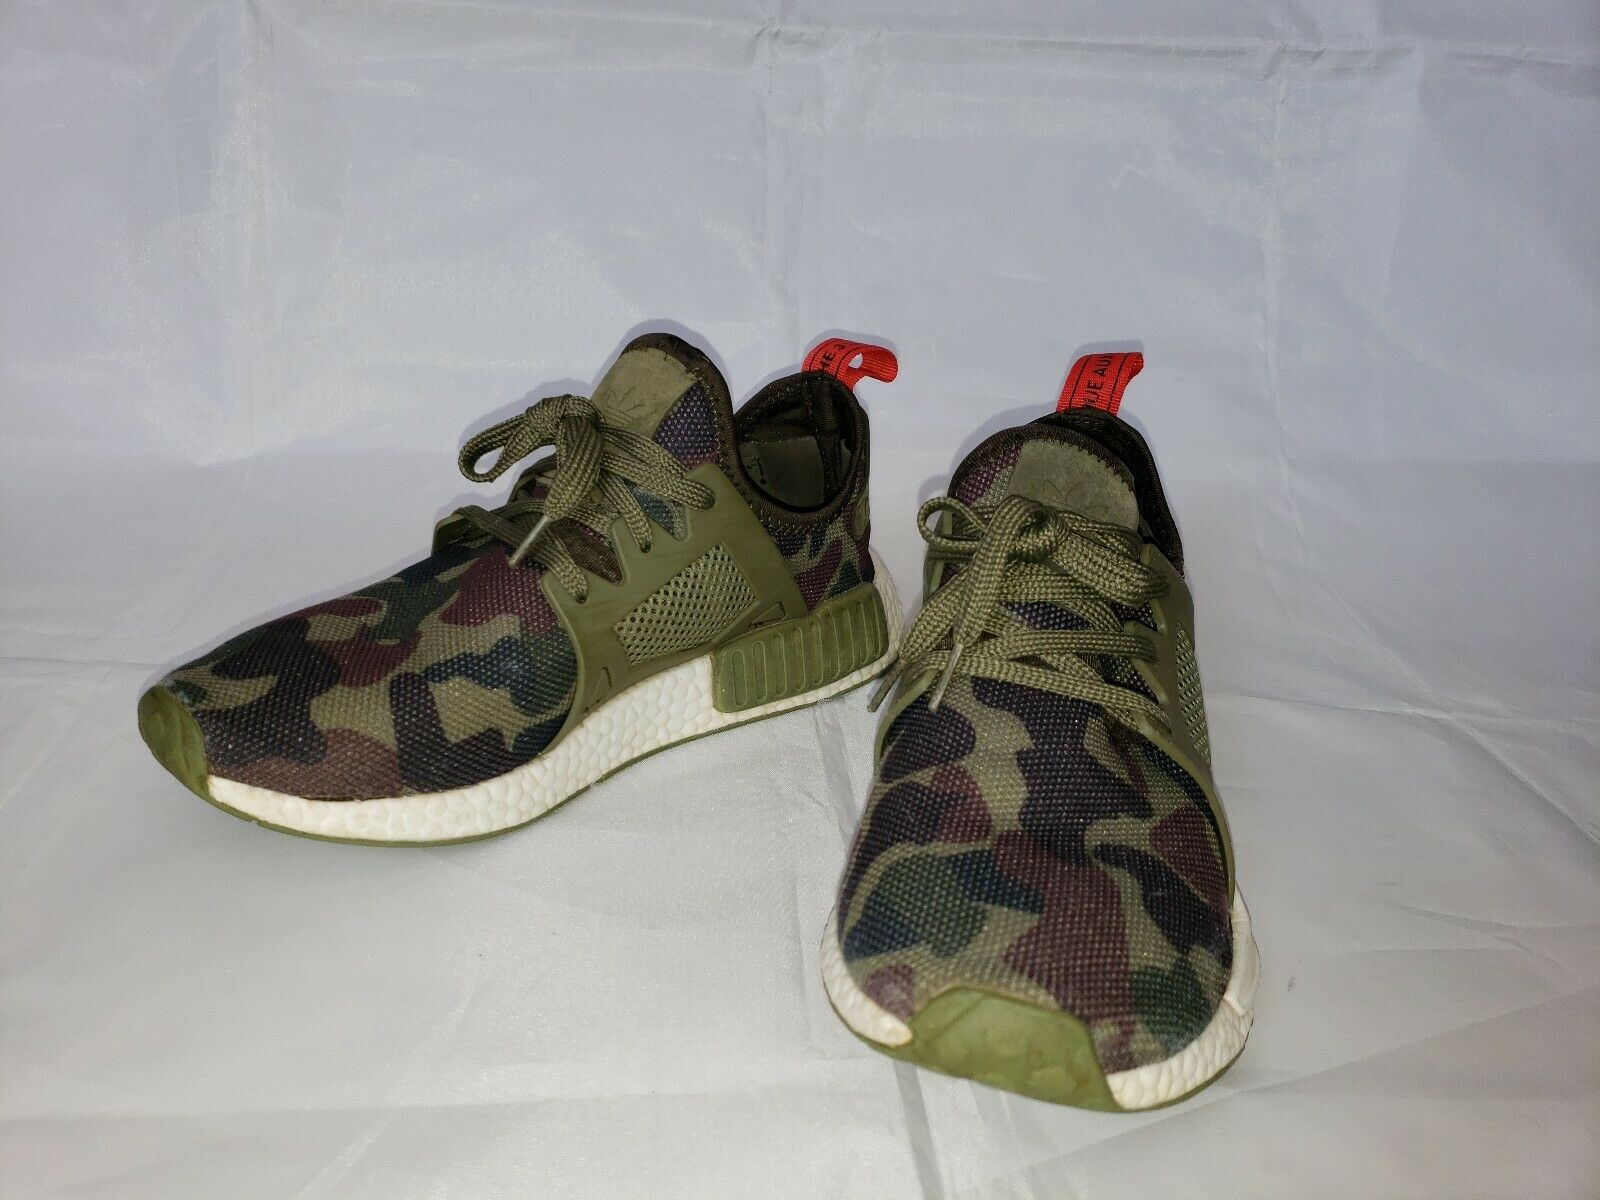 adidas NMD Xr1 Duck Camo Green Olive